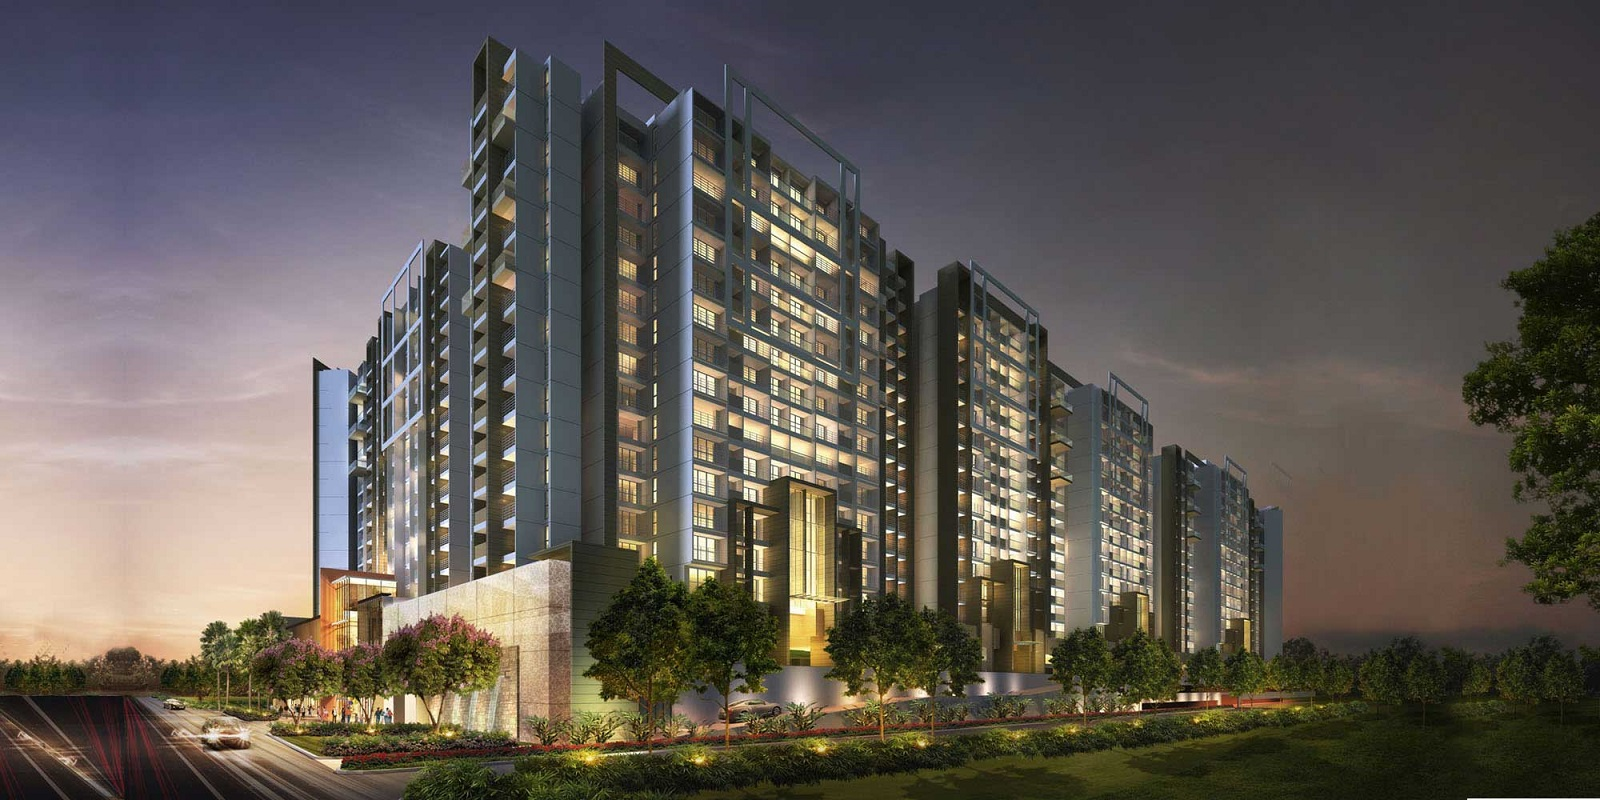 sheth vasant oasis daffodil bldg 7 project project large image1